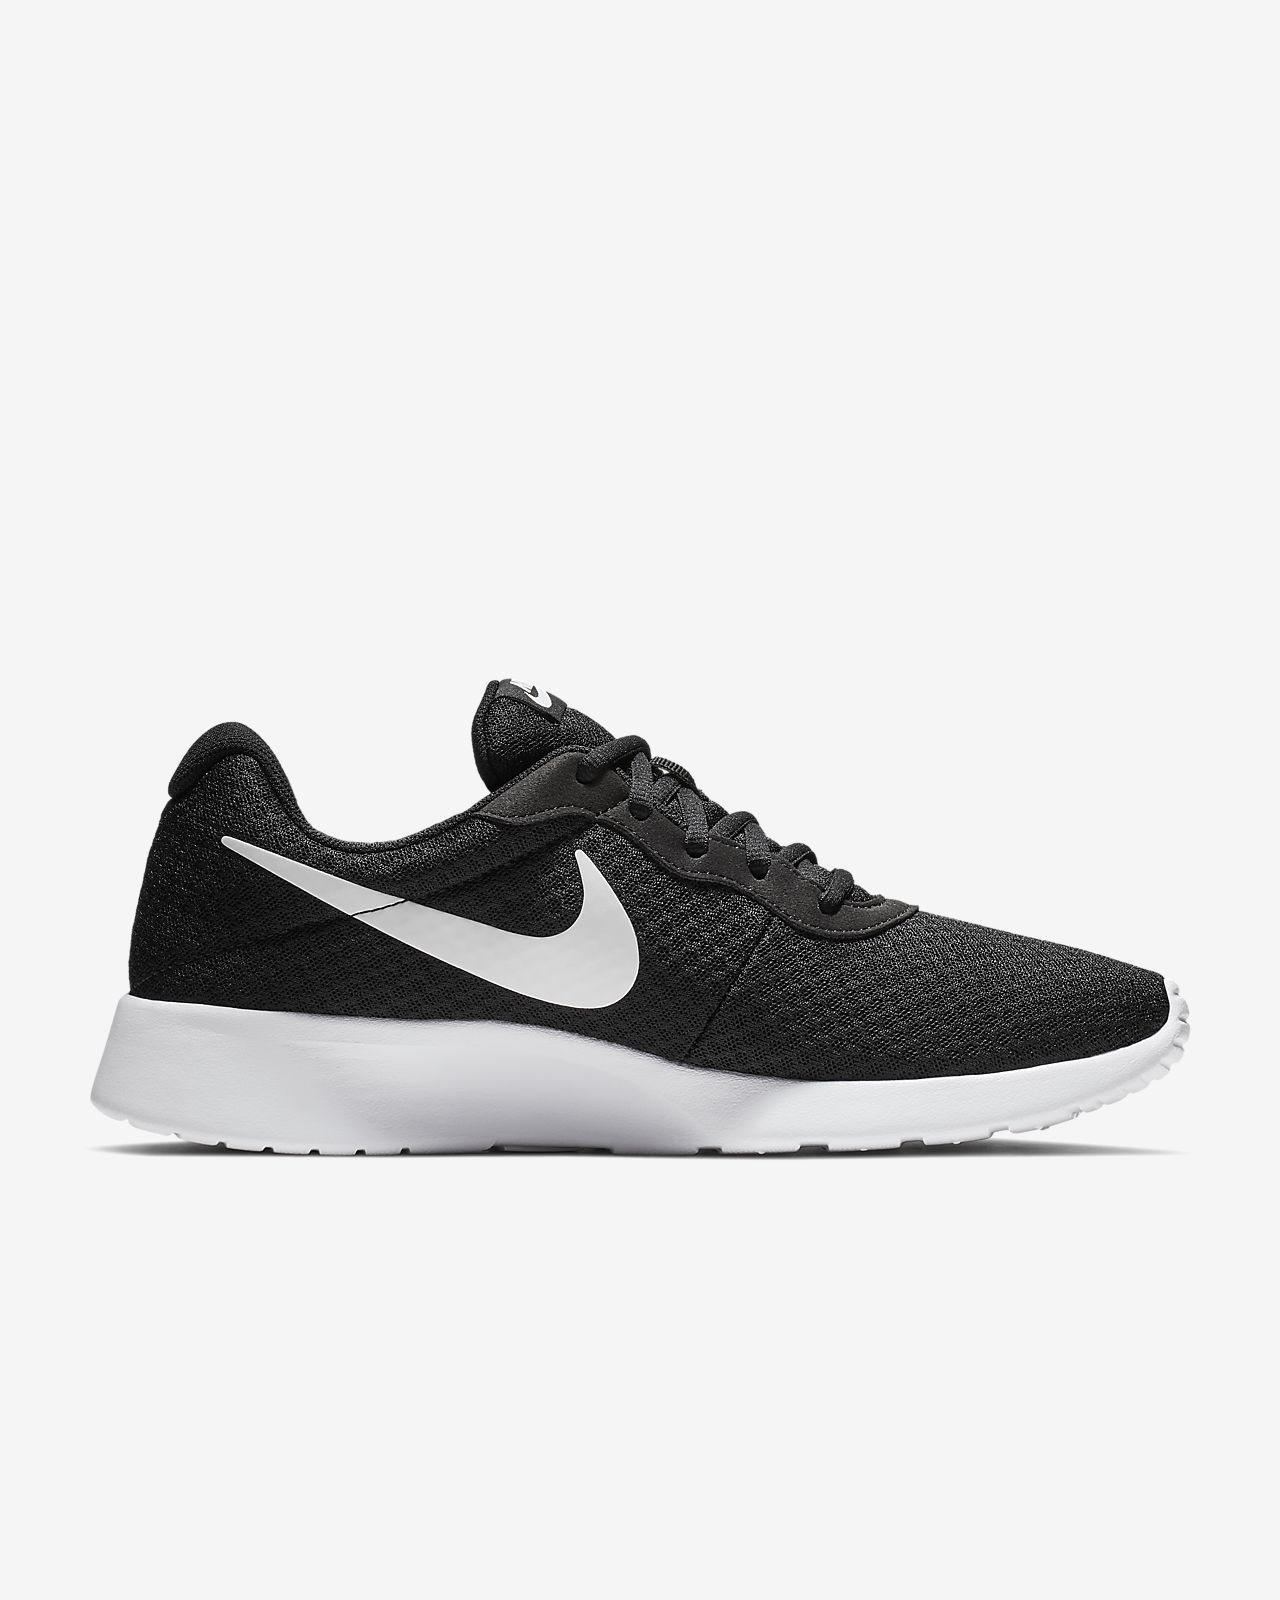 6a687daa65f31 Low Resolution Nike Tanjun Men s Shoe Nike Tanjun Men s Shoe